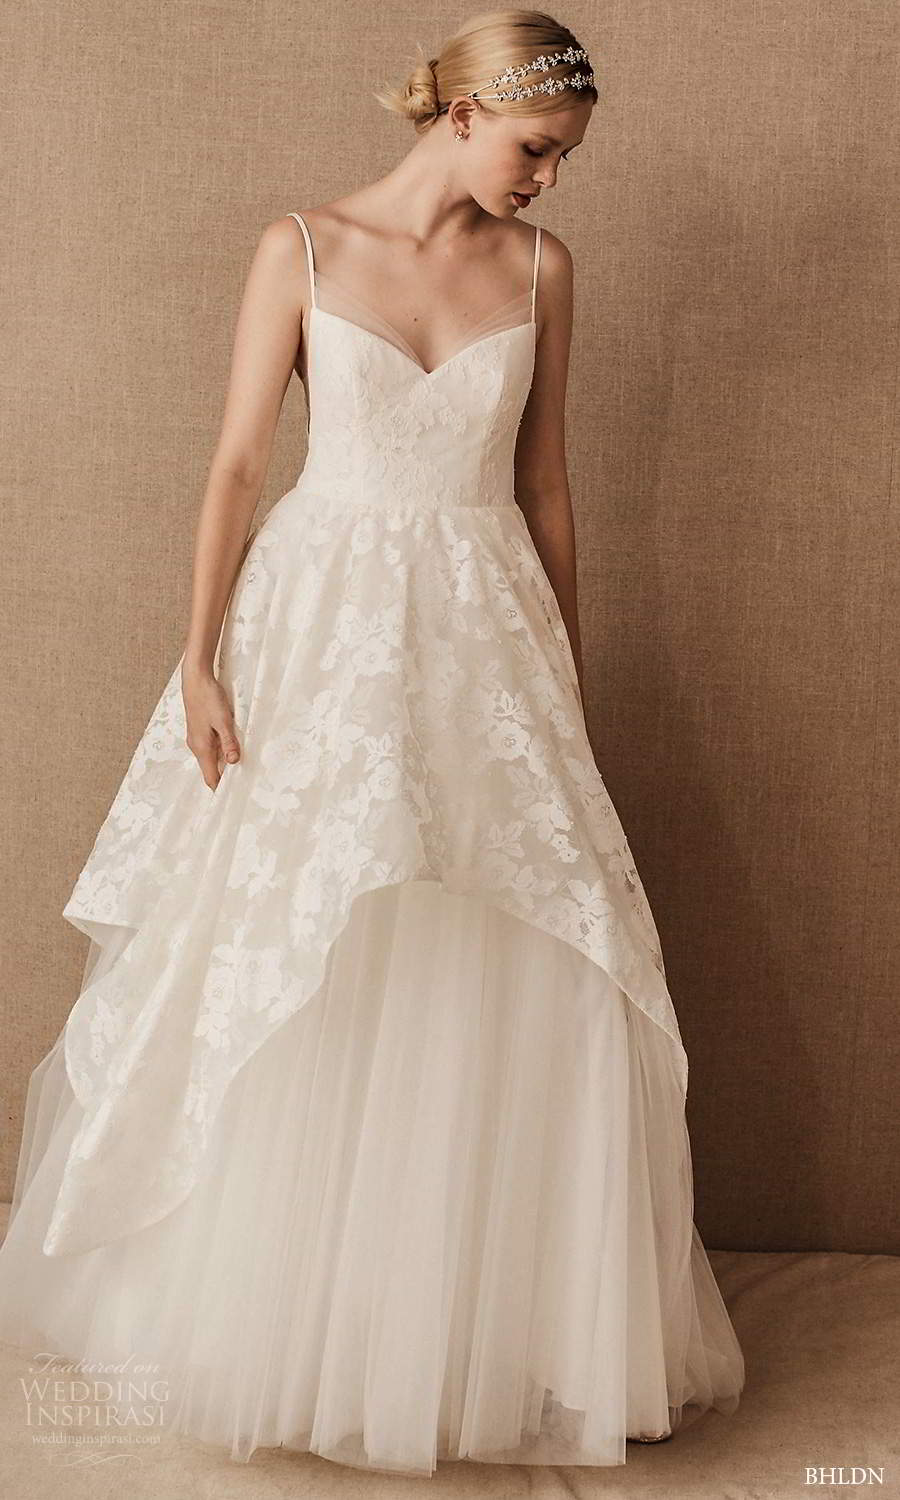 bhldn spring 2021 bridal sleeveless straps sweetheart neckline embellished bodice a line ball gown wedding dress chapel train (1) mv